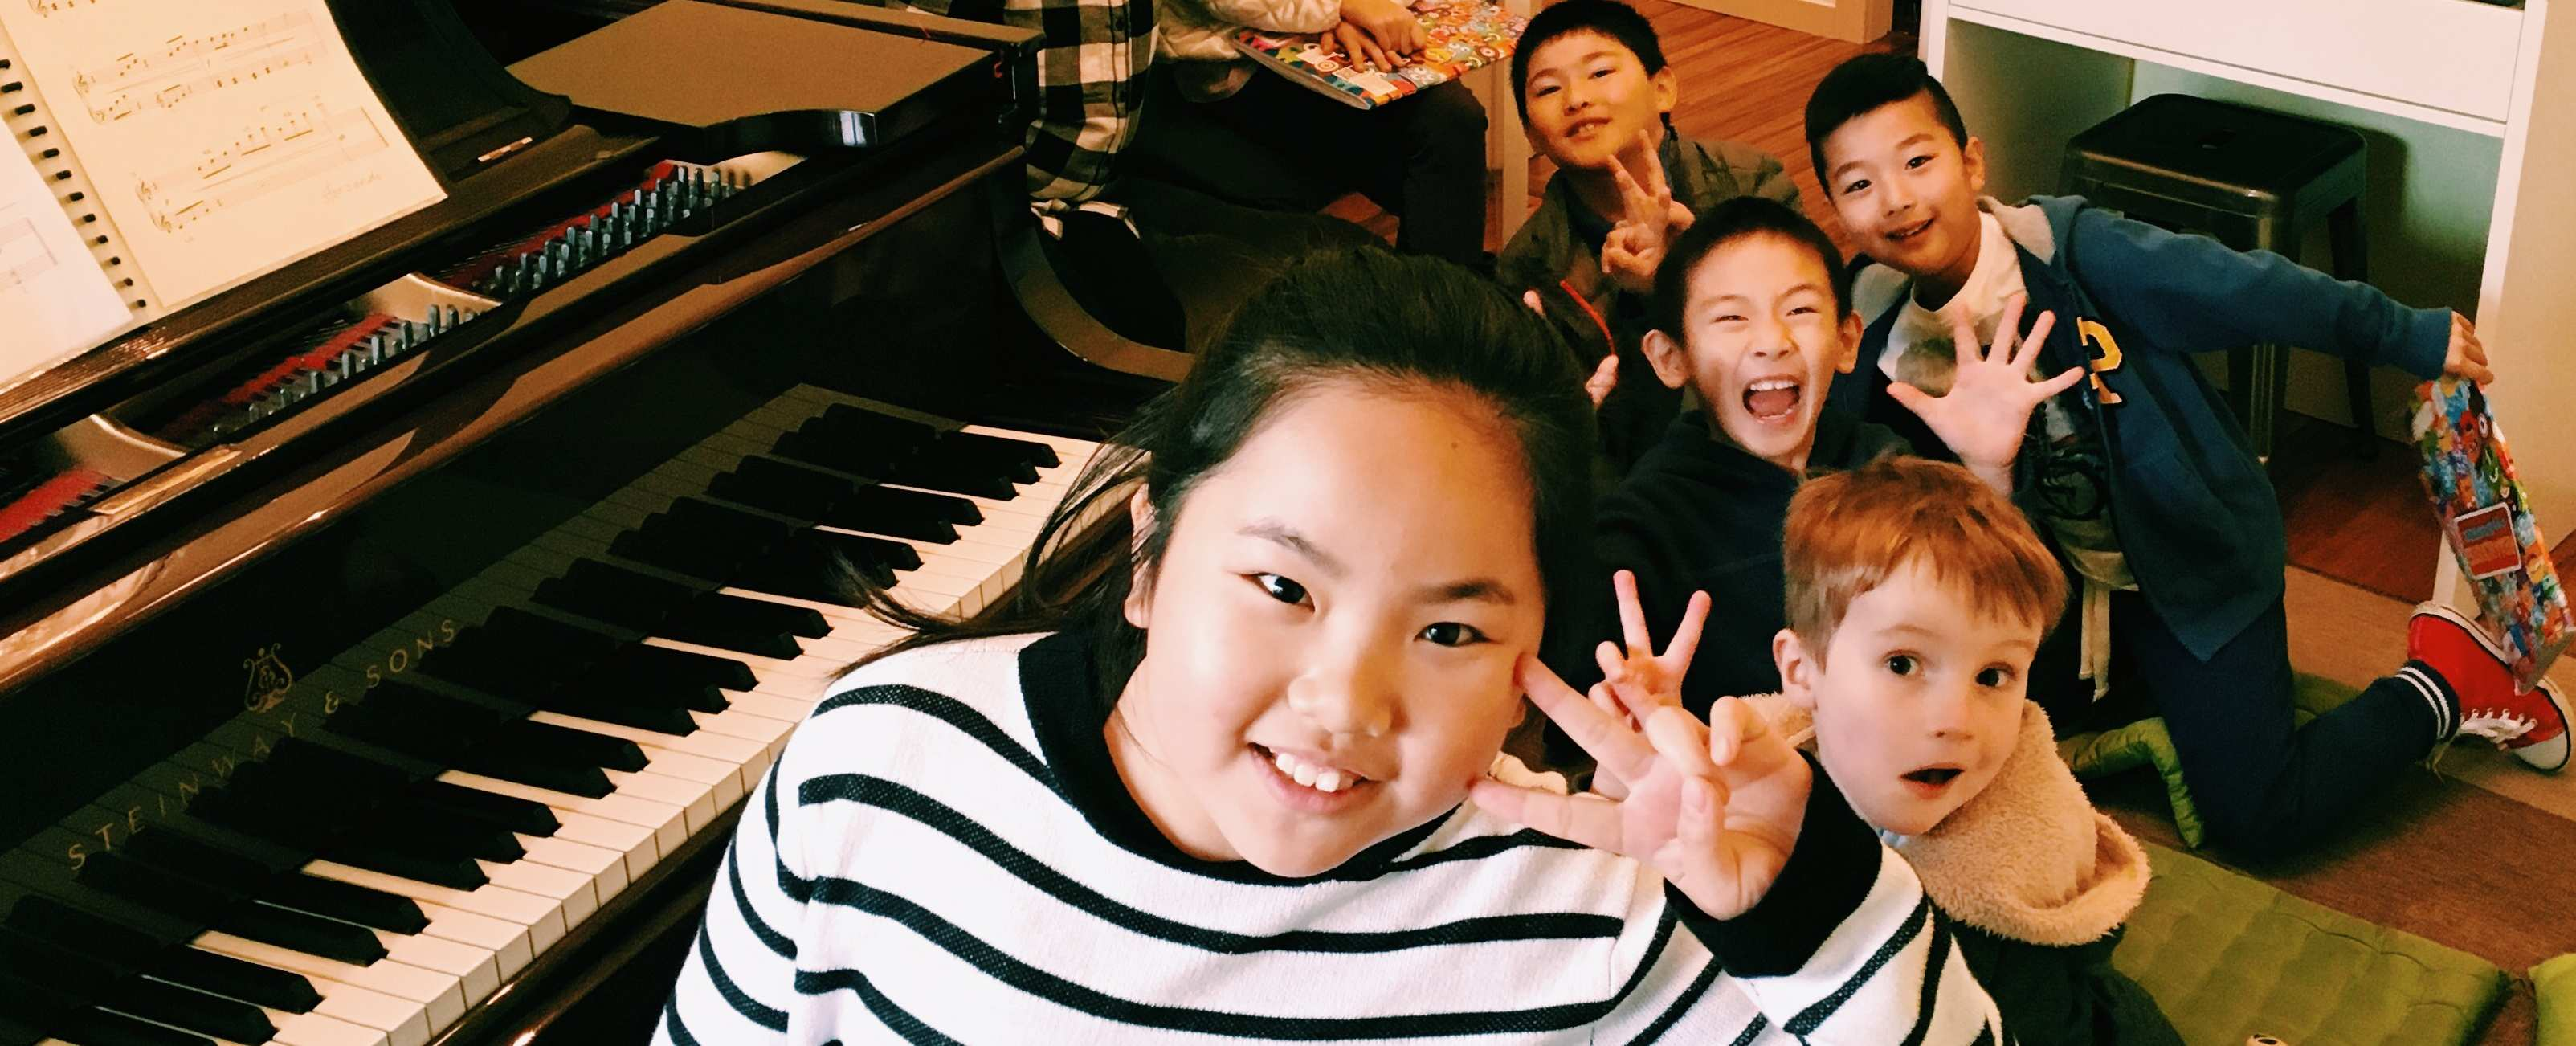 Piano Lessons & Classes in Sydney